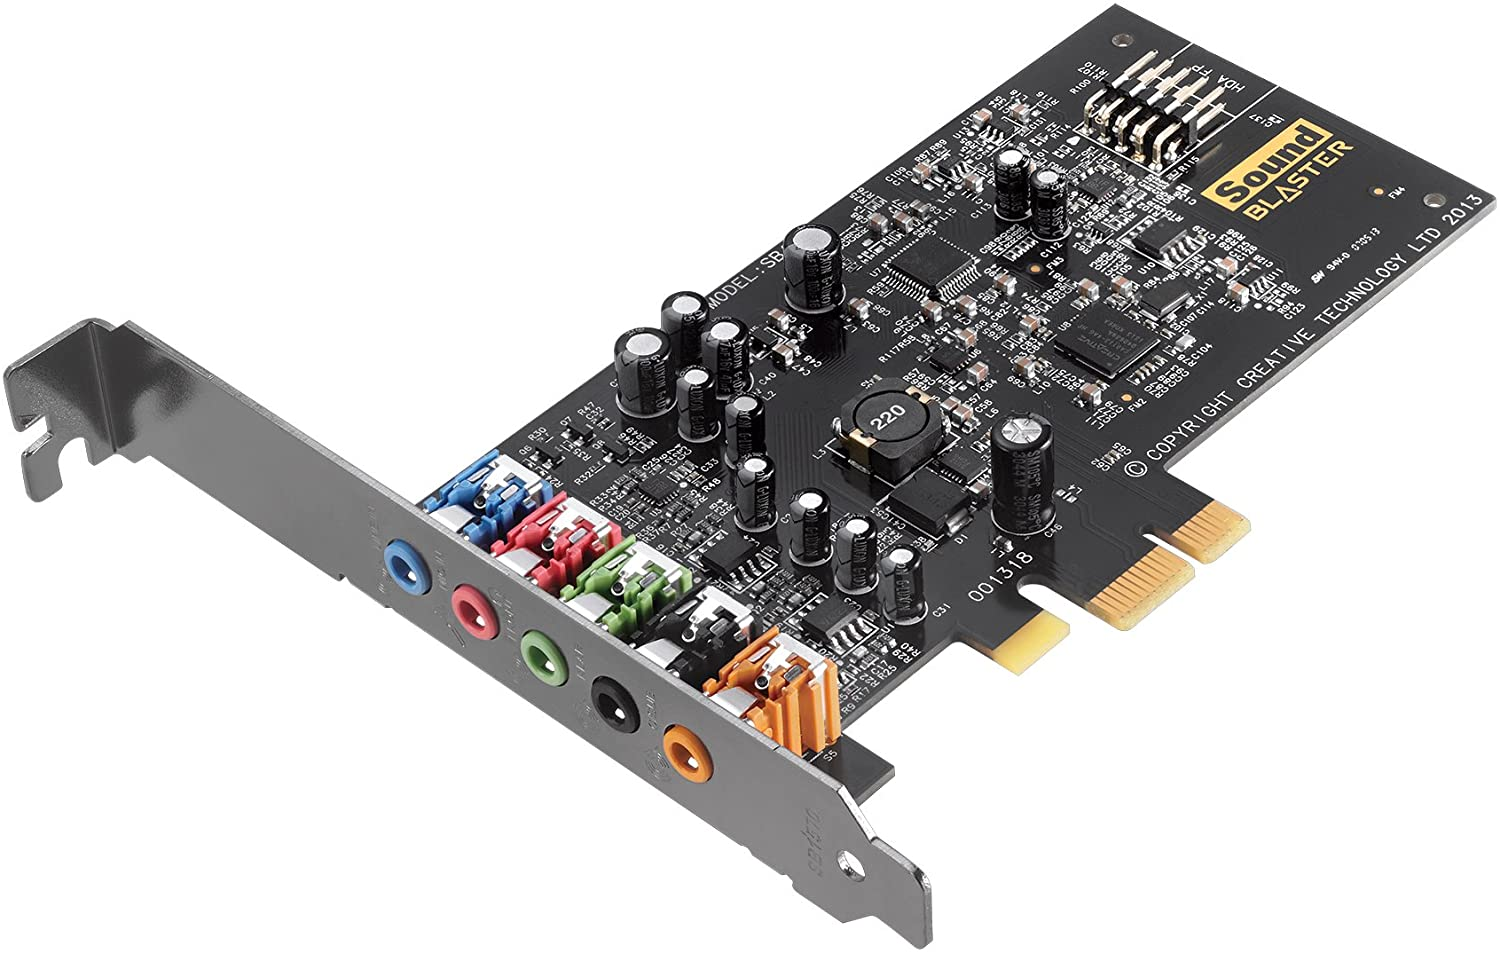 main images Creative Sound Blaster Audigy FX PCIe 5.1 Sound Card with High Performance Headphone Amp